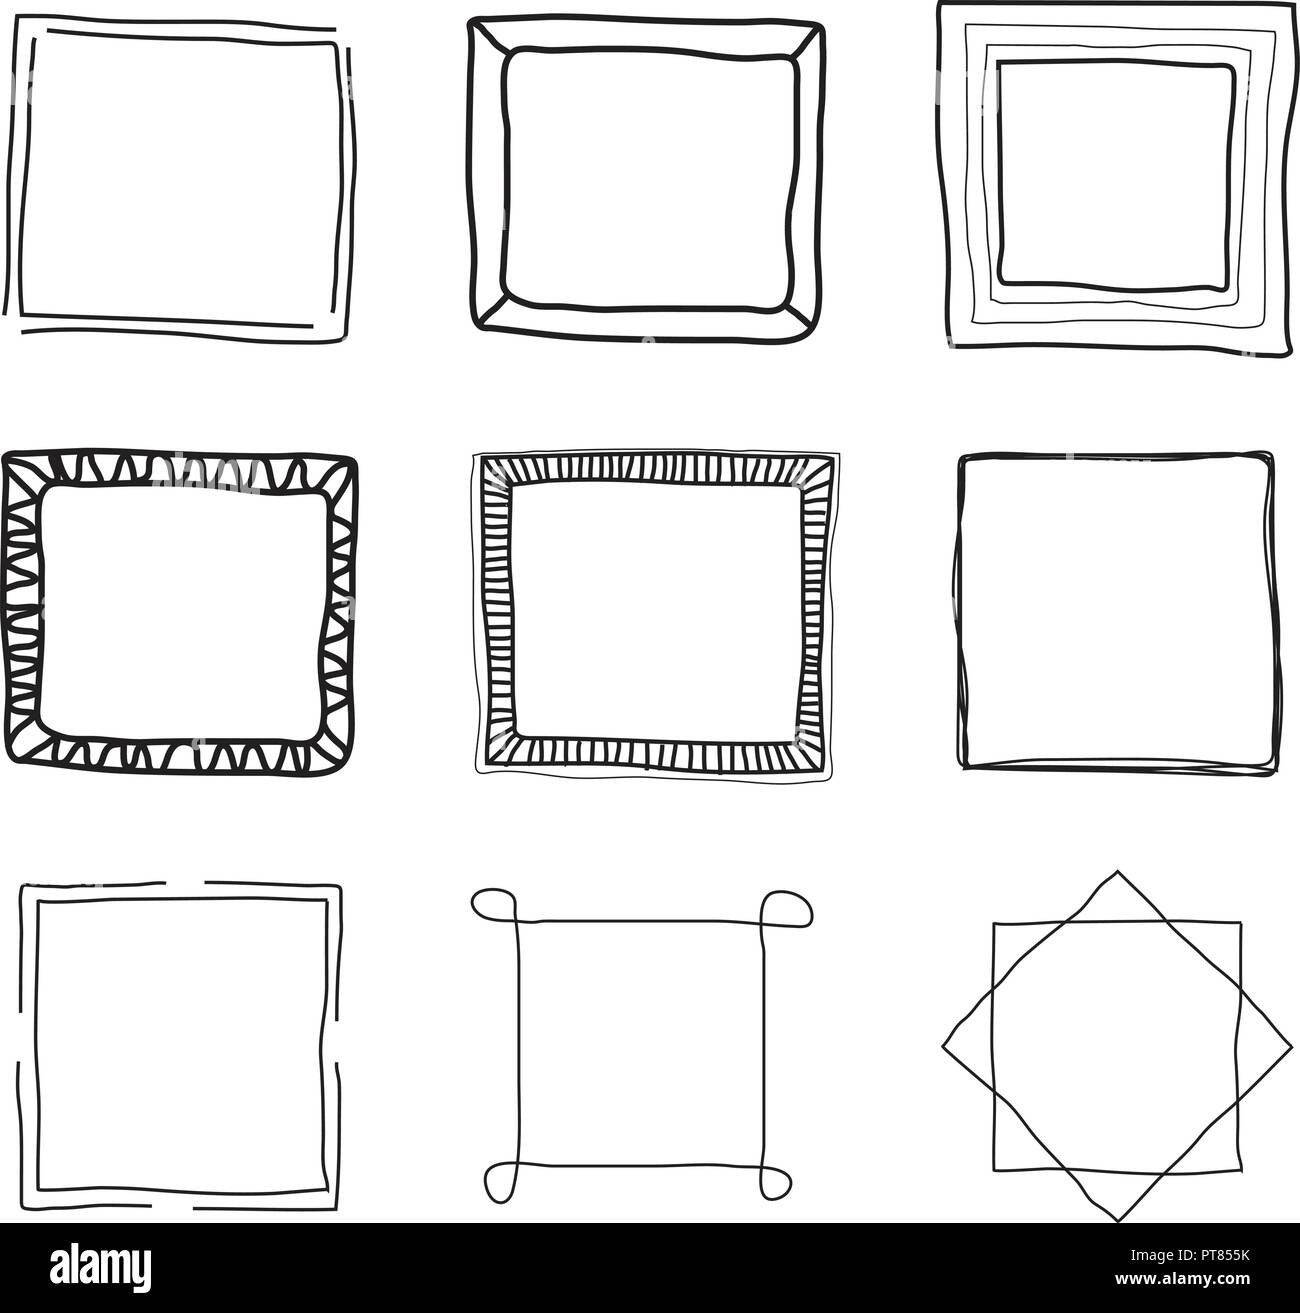 Decorative Thin Black Line Wiring Diagrams How To Wire A 220 Volt Gfci Omegadiamondcom Vector Collection Of Frame Borders Frames Rh Alamy Com Dotted Large